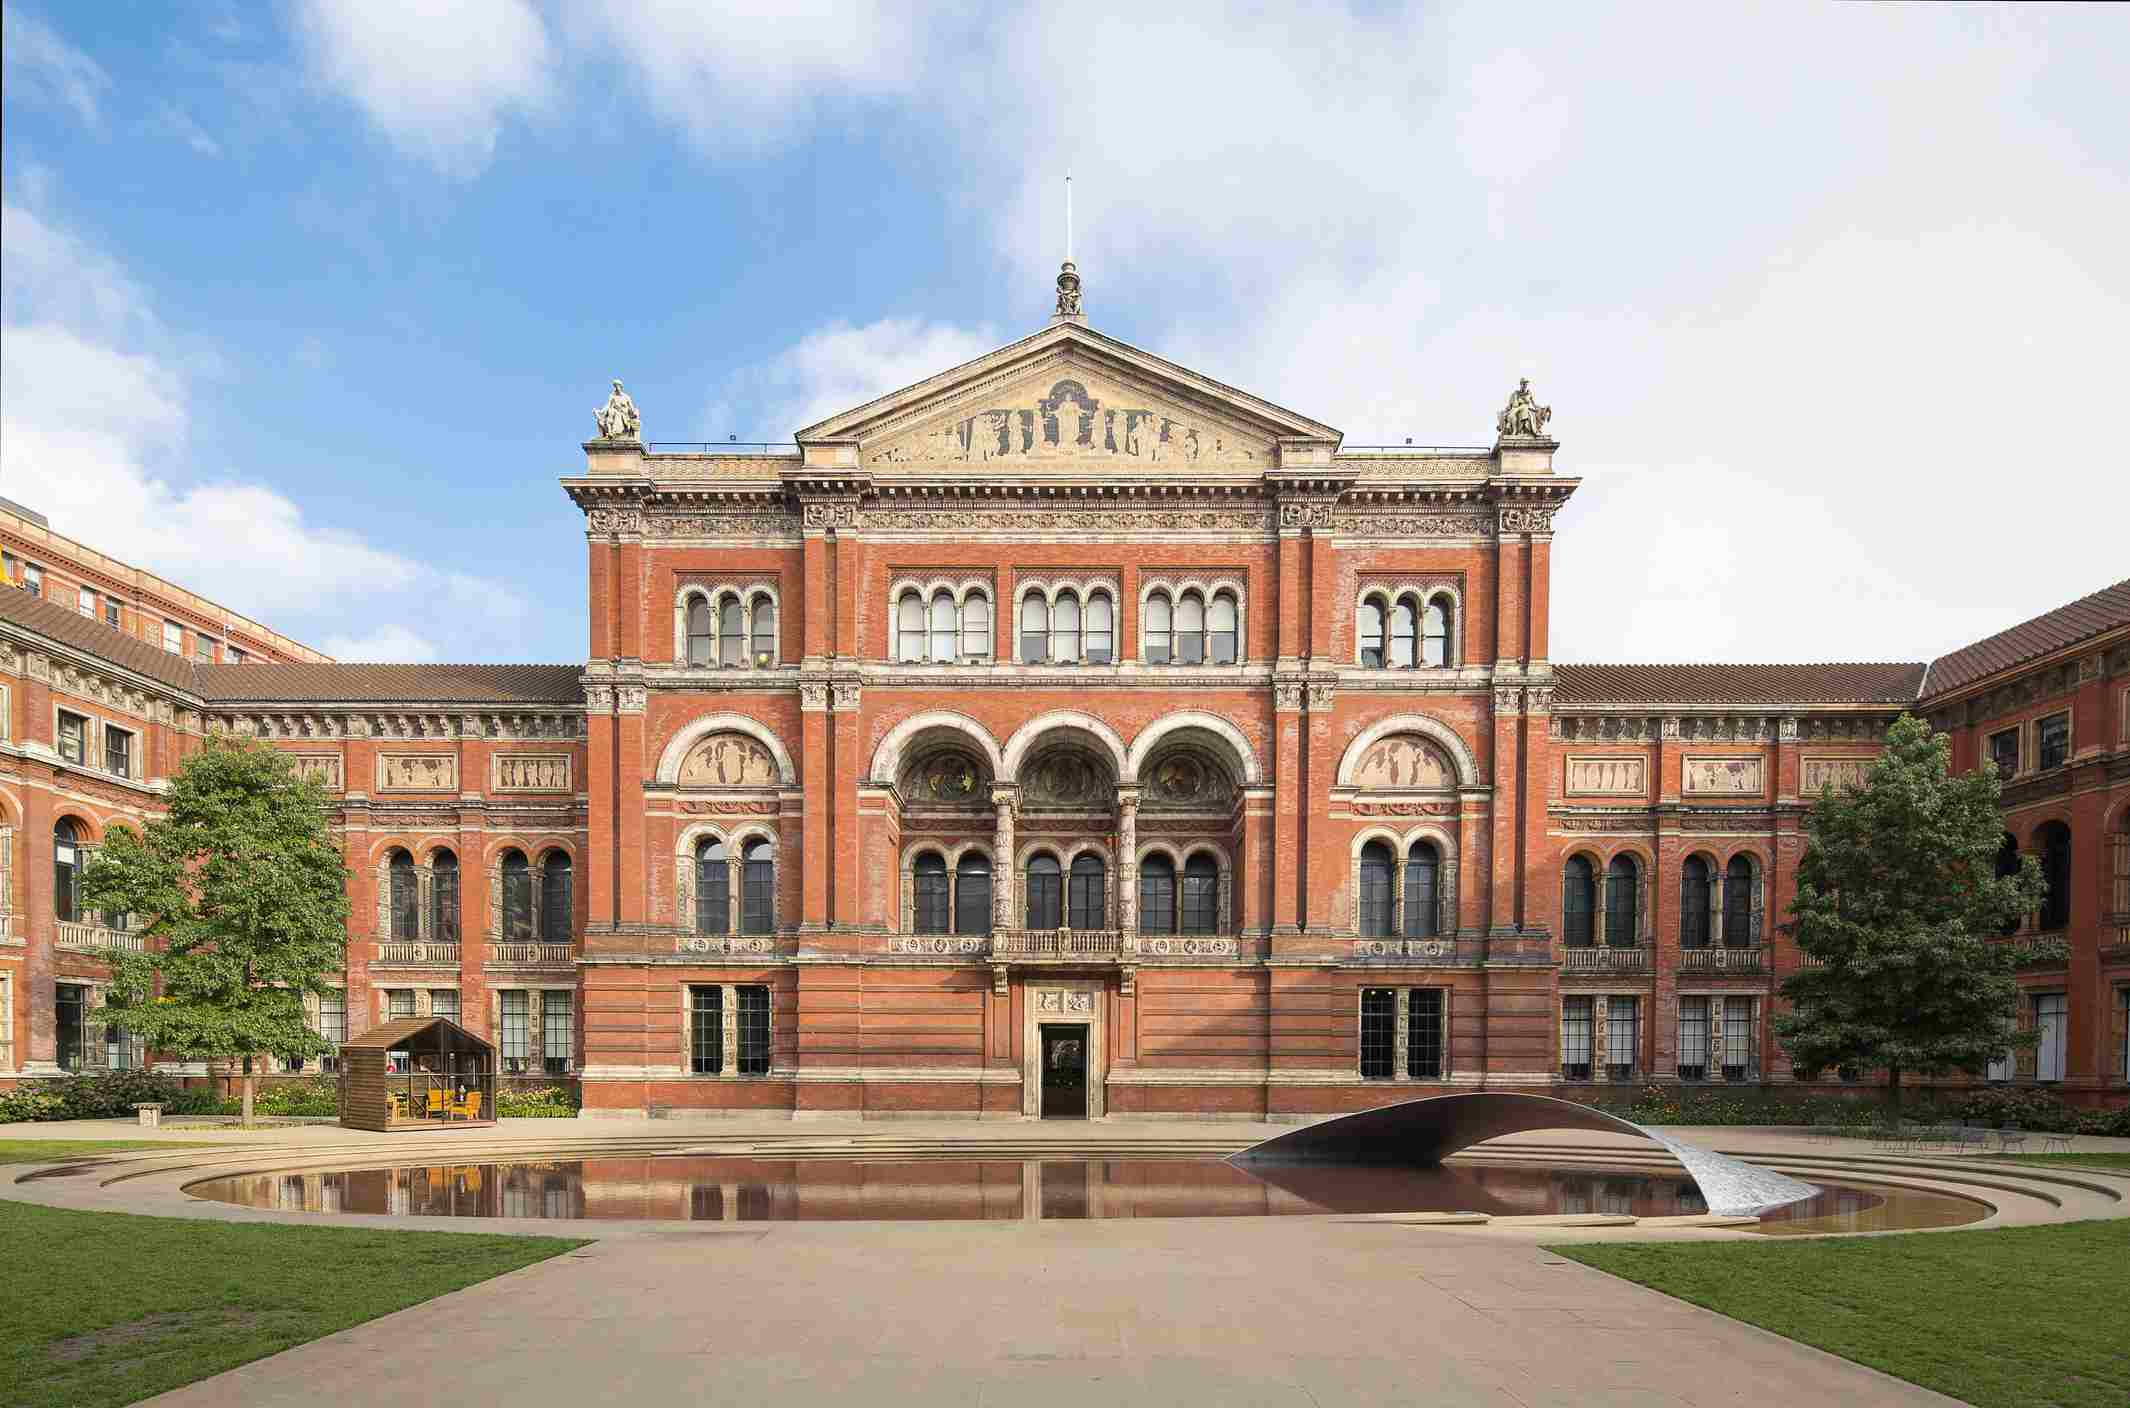 Courtyard of the Victoria and Albert Museum, London, England